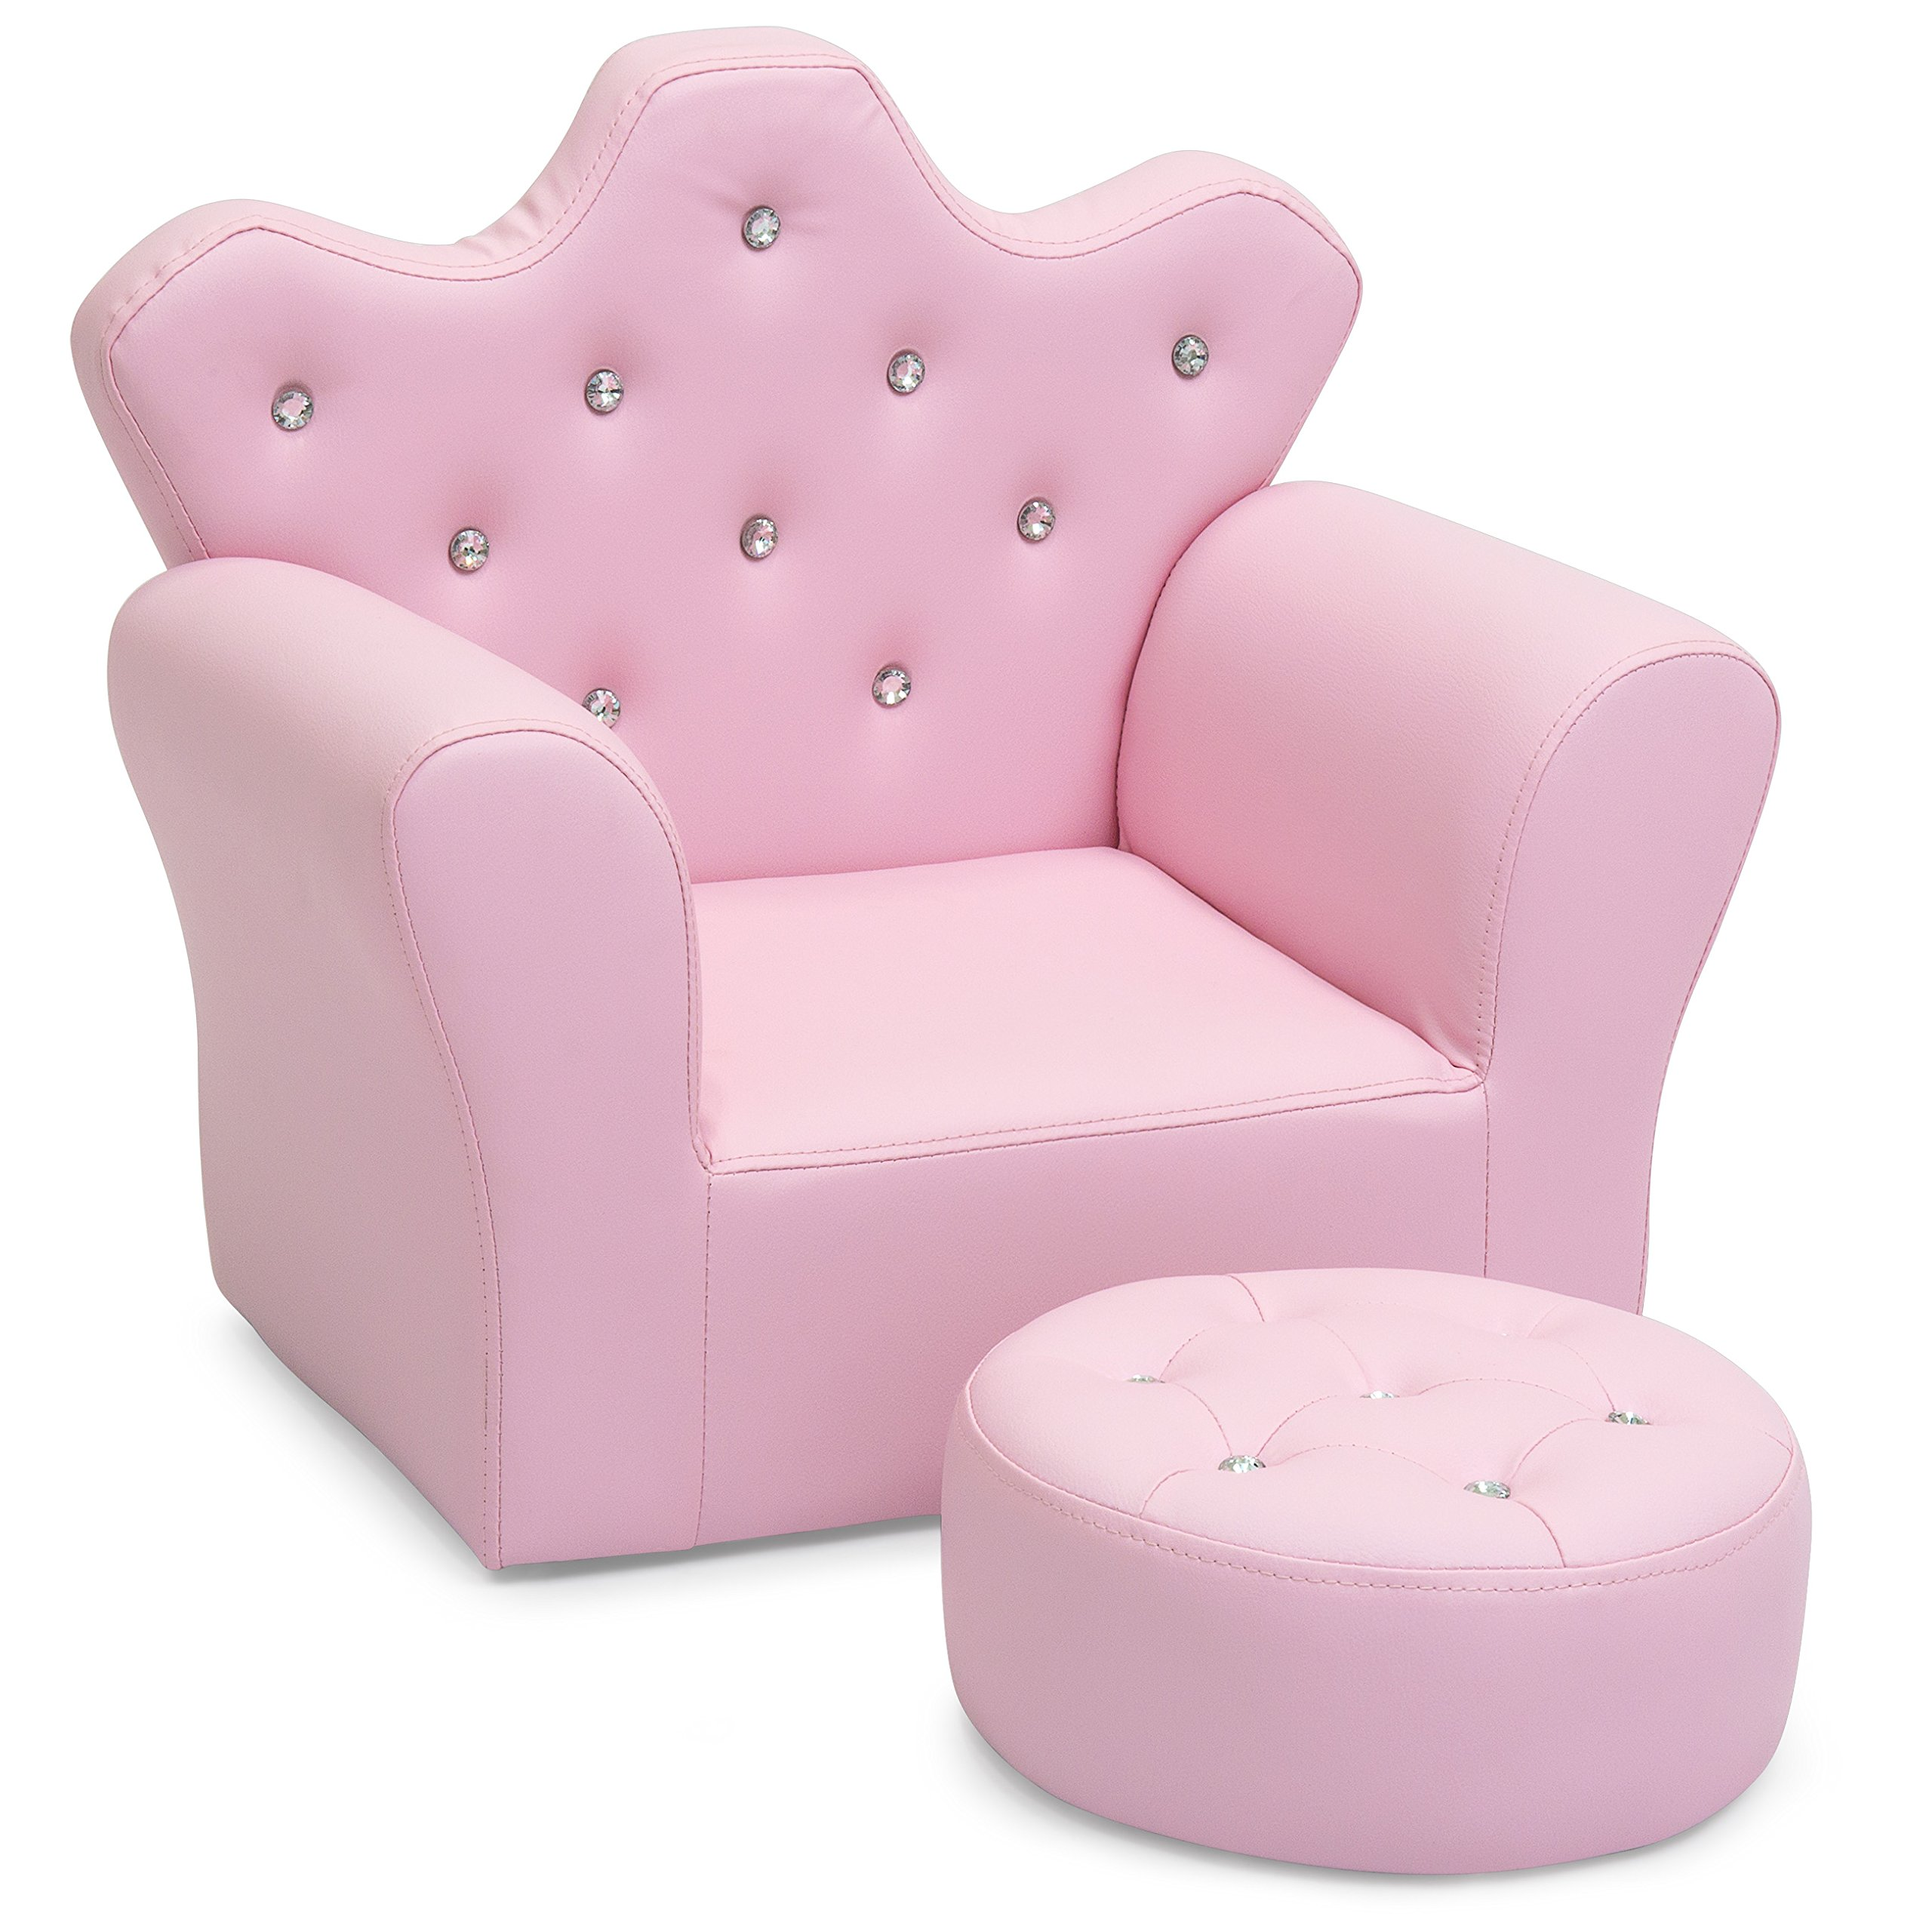 Best Choice Products Kids Upholstered Tufted Bejeweled Mini Chair Seat w/Ottoman - Pink